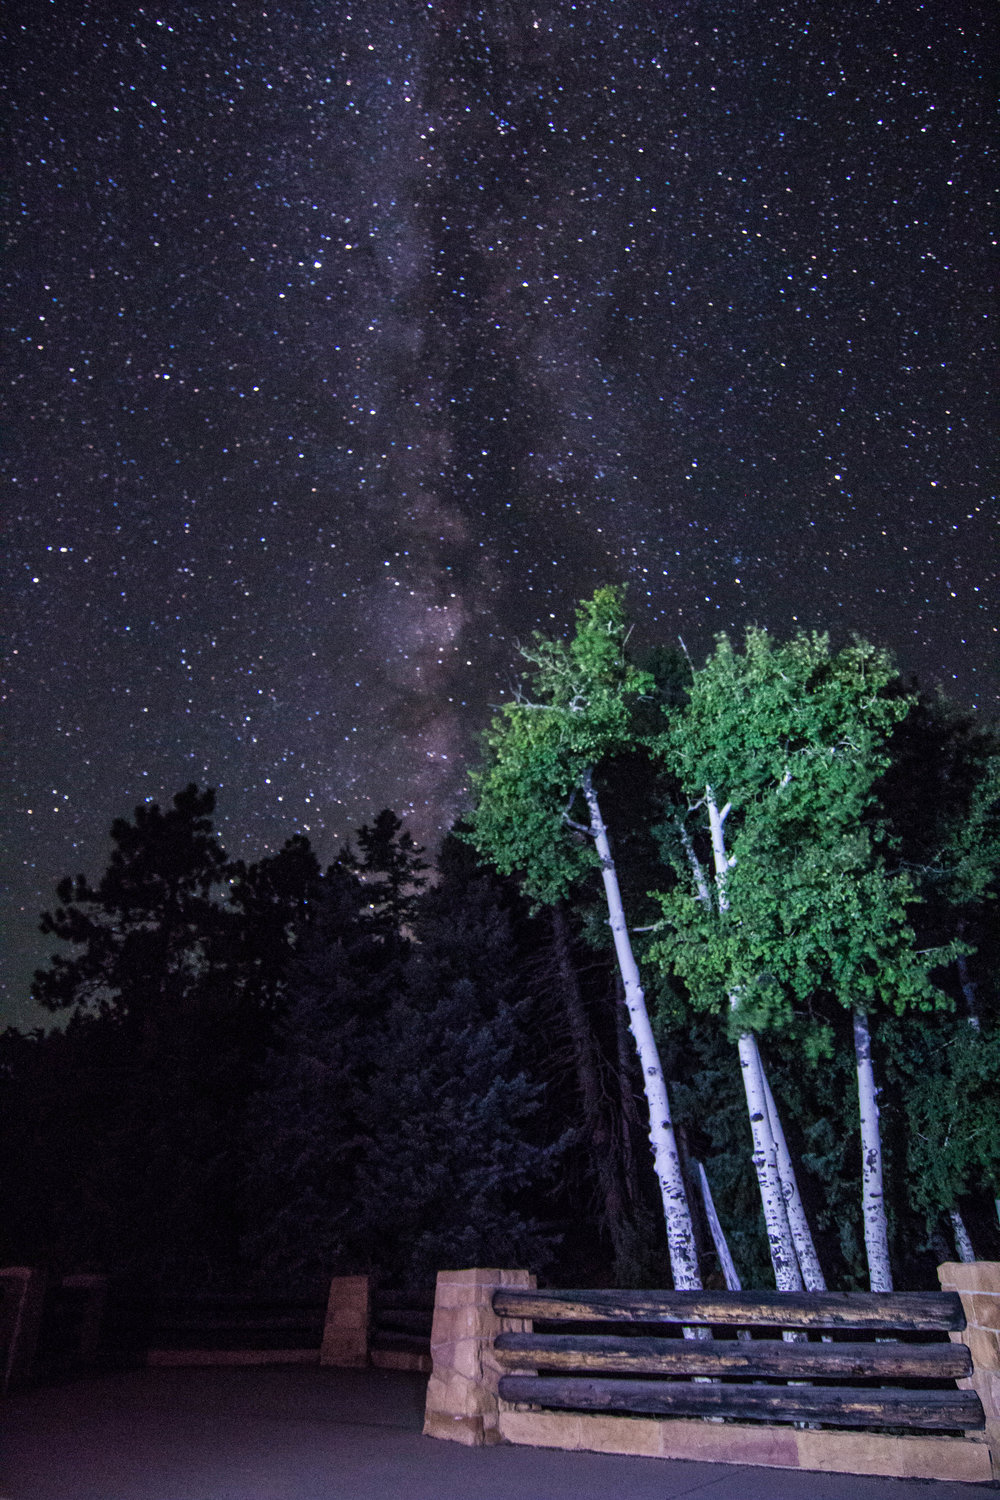 Did you know?  Bryce Canyon National Park has a 7.4 limiting magnitude night sky? In most rural areas of the United States, 2500 stars can be seen on a clear night. At Bryce Canyon, 7500 stars can be seen twinkling.